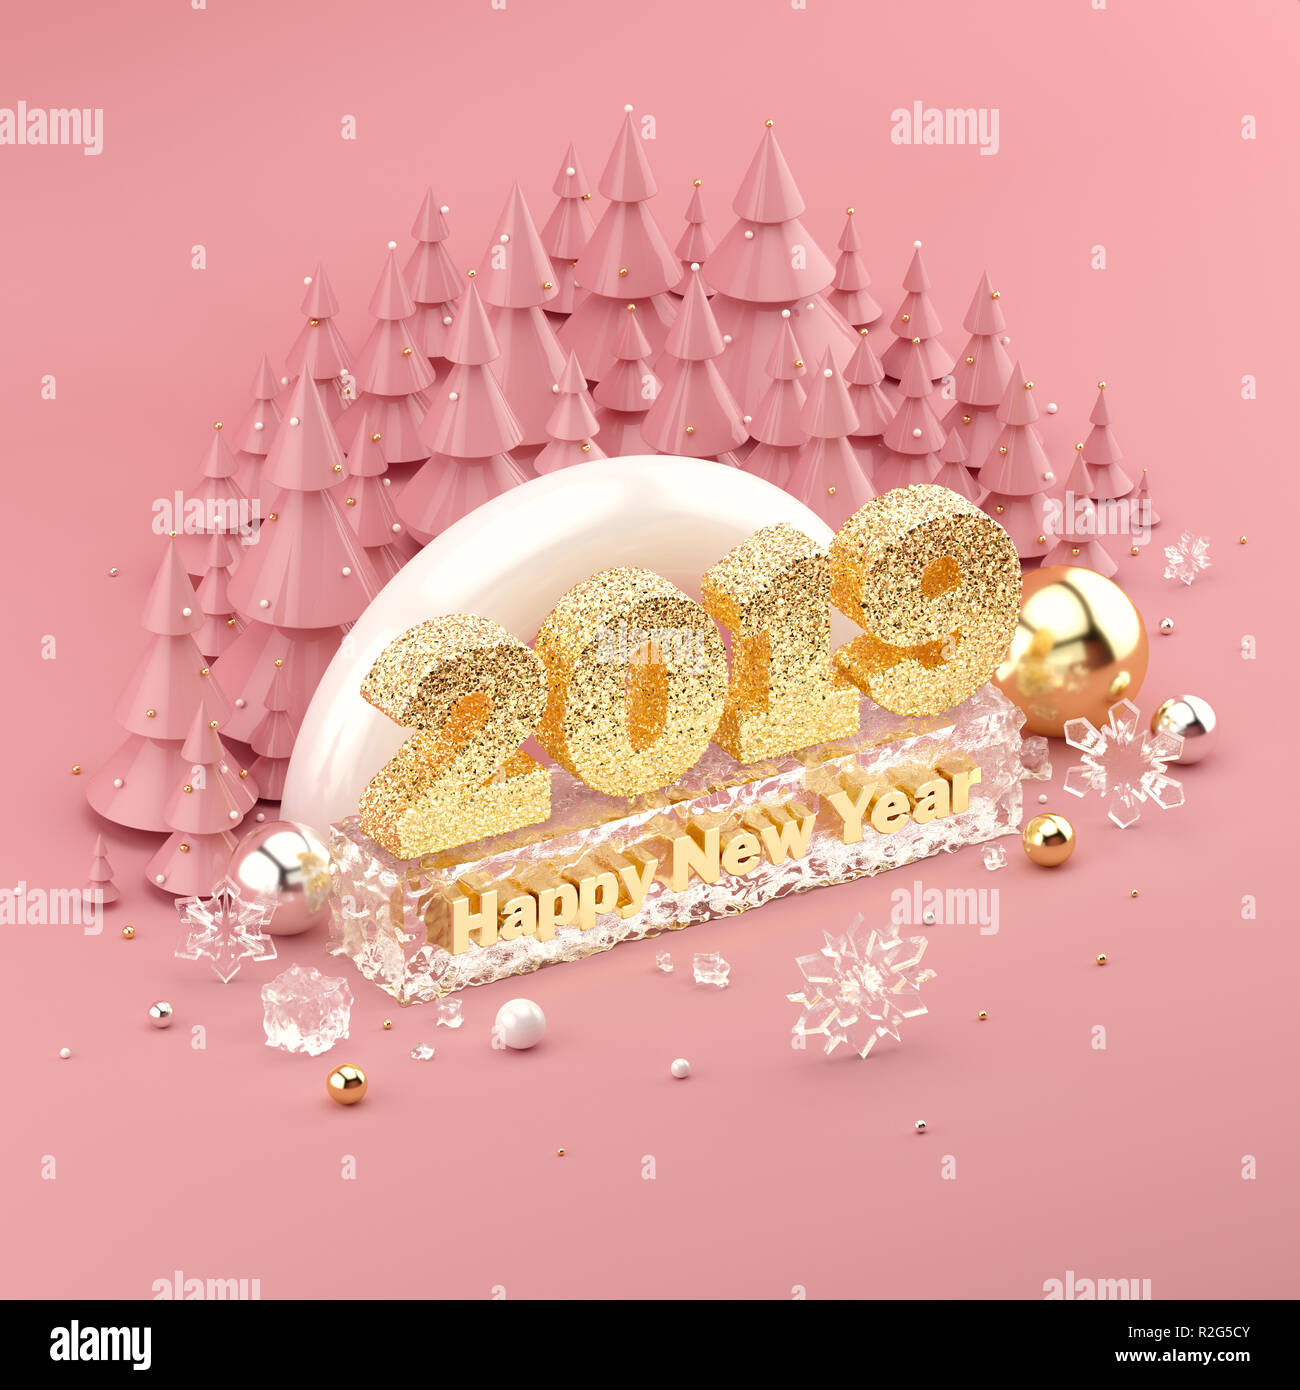 Rose Gold isometric 3D illustration with 2019 Happy New Year's Wish. - Stock Image